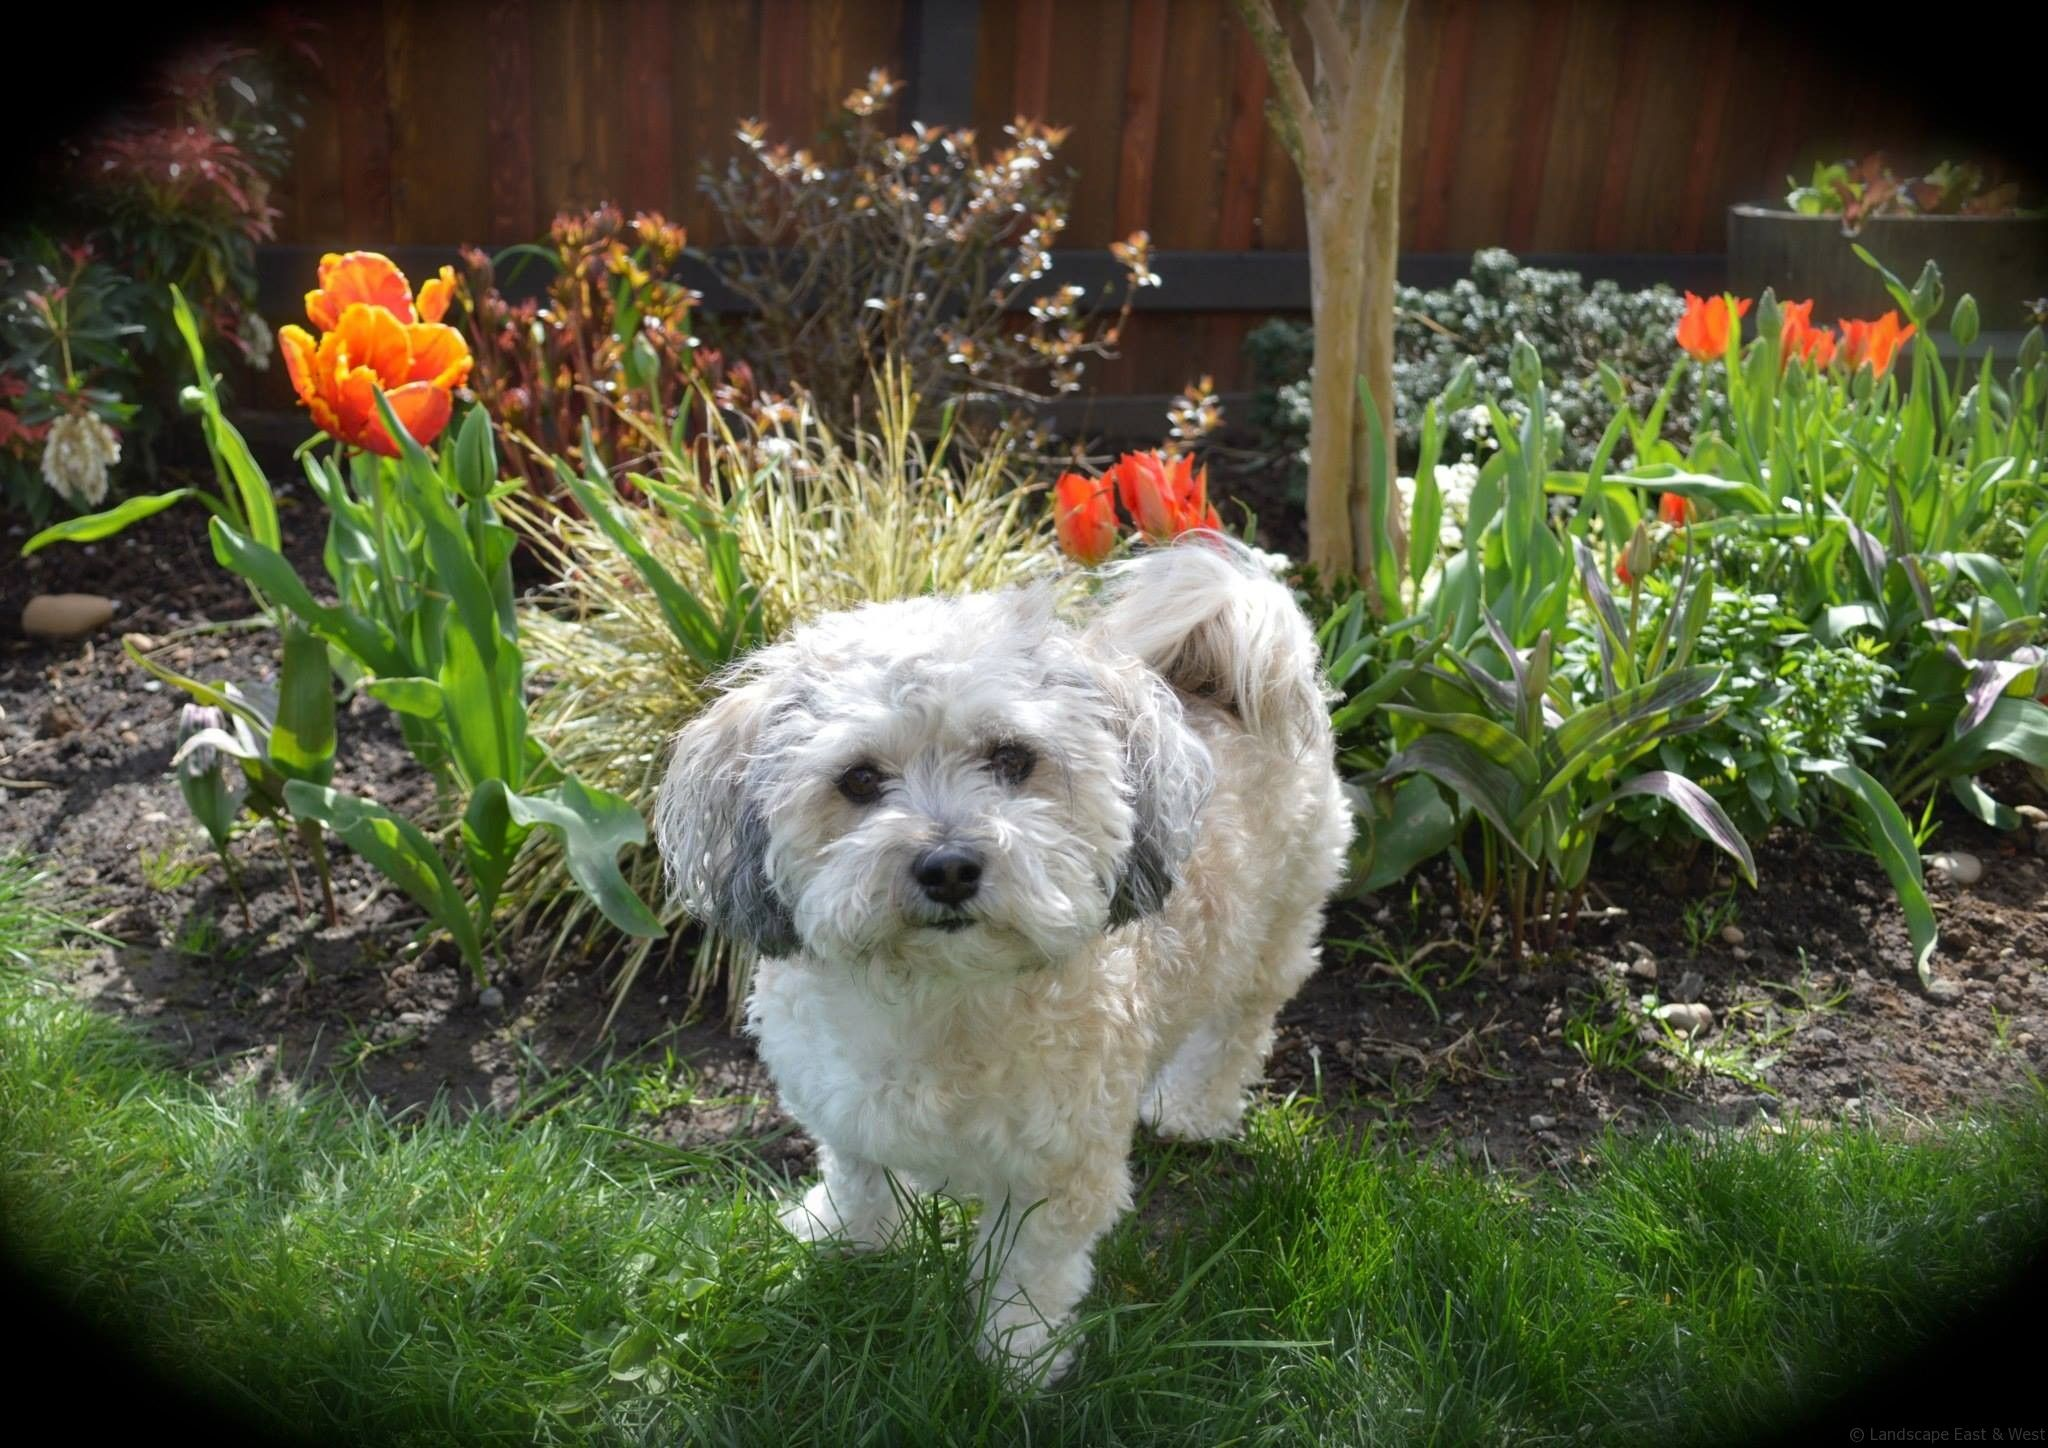 Twin Dog Friendly Landscaping (With images) | Dog friendly ...